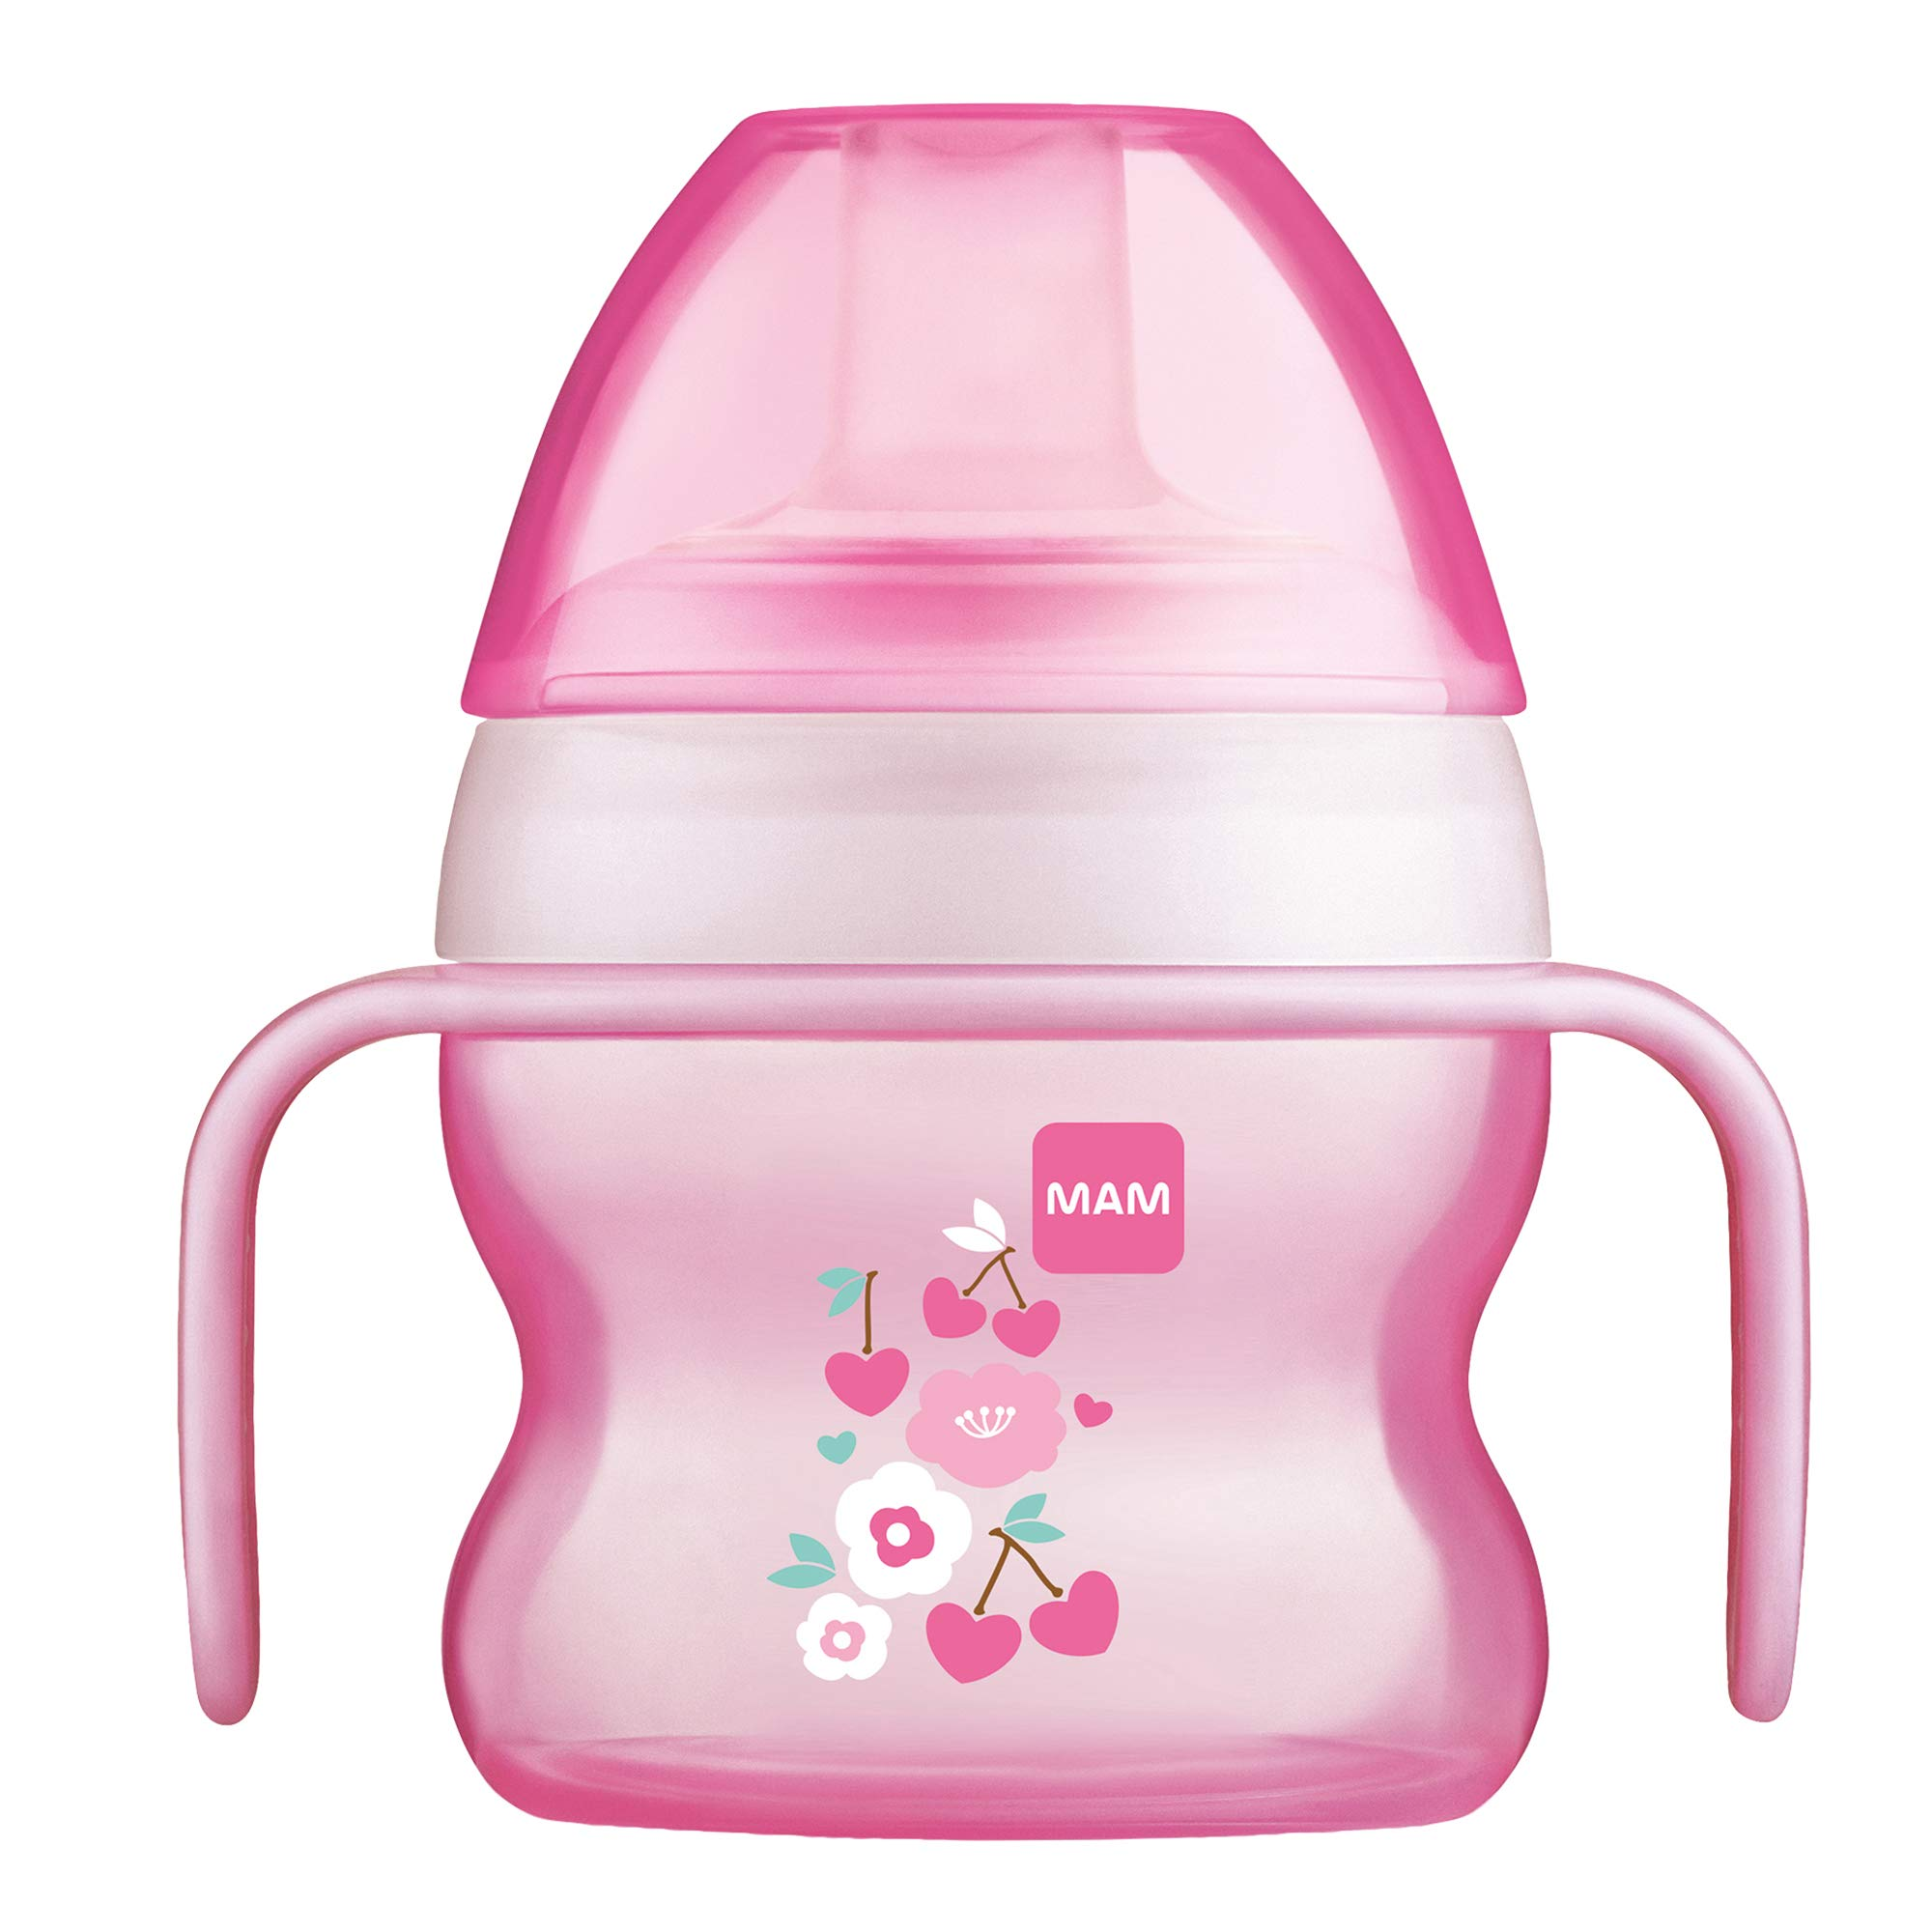 MAM Starter Cup (1 Count), MAM Sippy Cup, Drinking Cup with Extra-Soft Spill-Free Spout and Non-Slip Handles, for Girls 4+ Months, Five Ounces, Pink